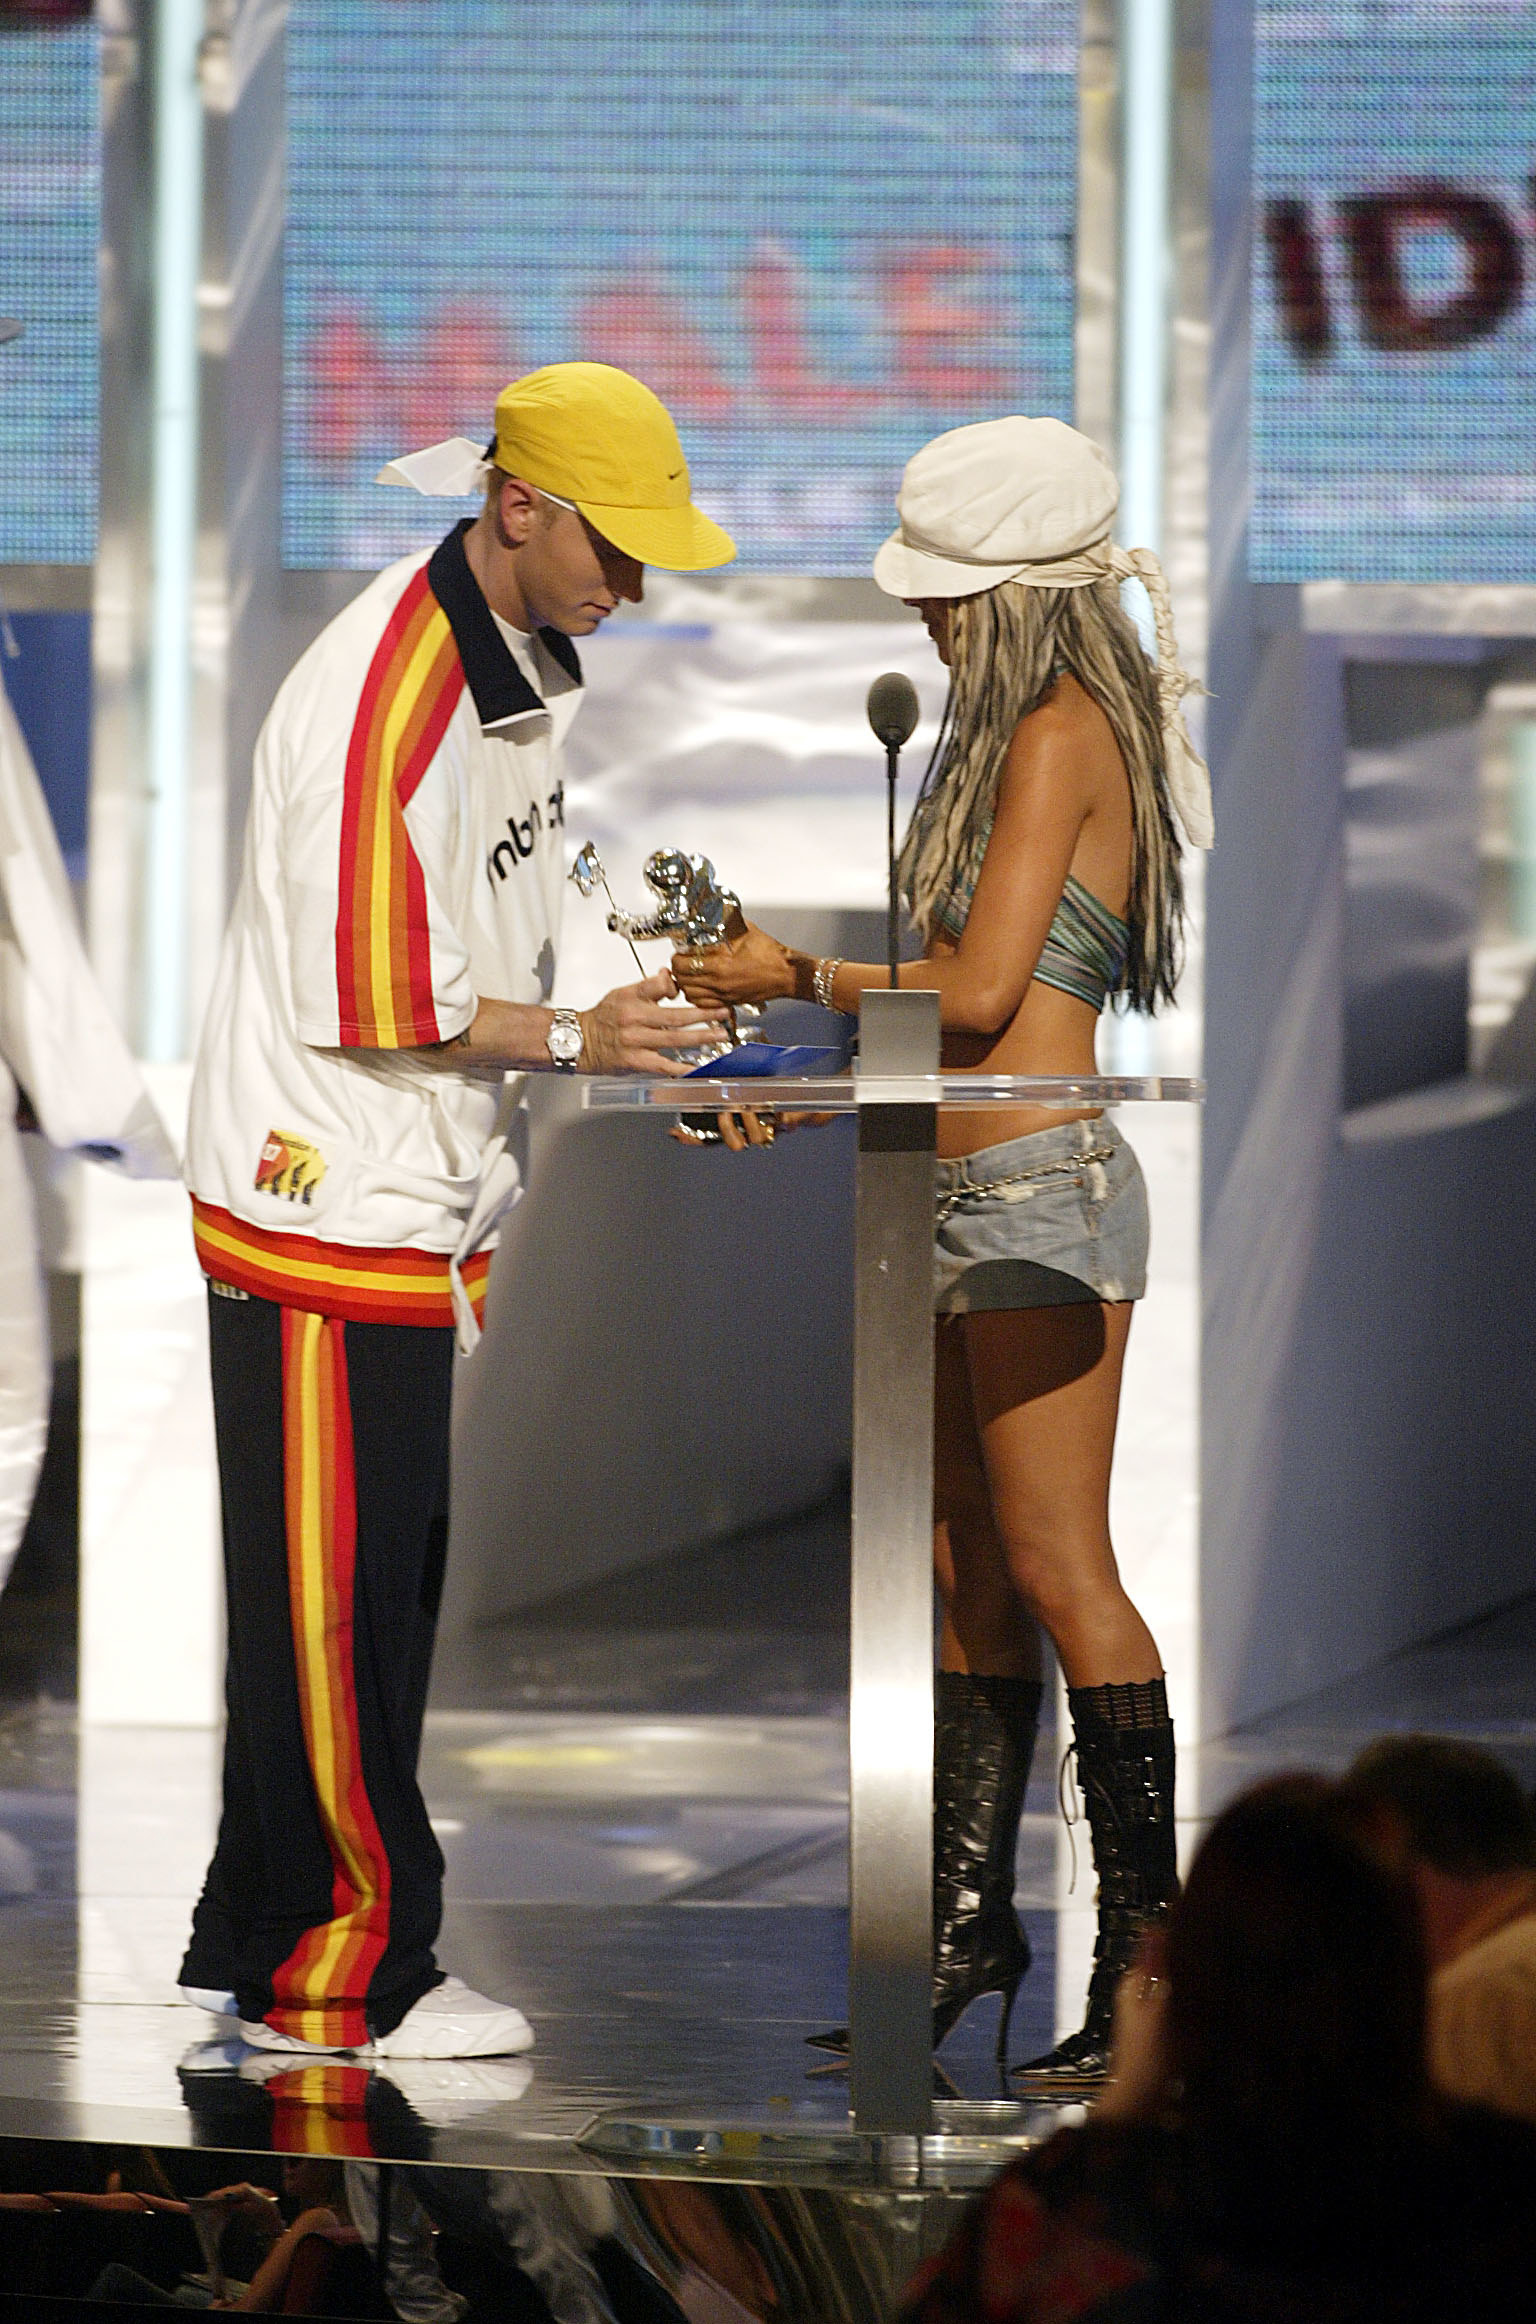 I think everyone knows by now that rapper Eminem and singer Christina Aguilera don't have the best relationship.